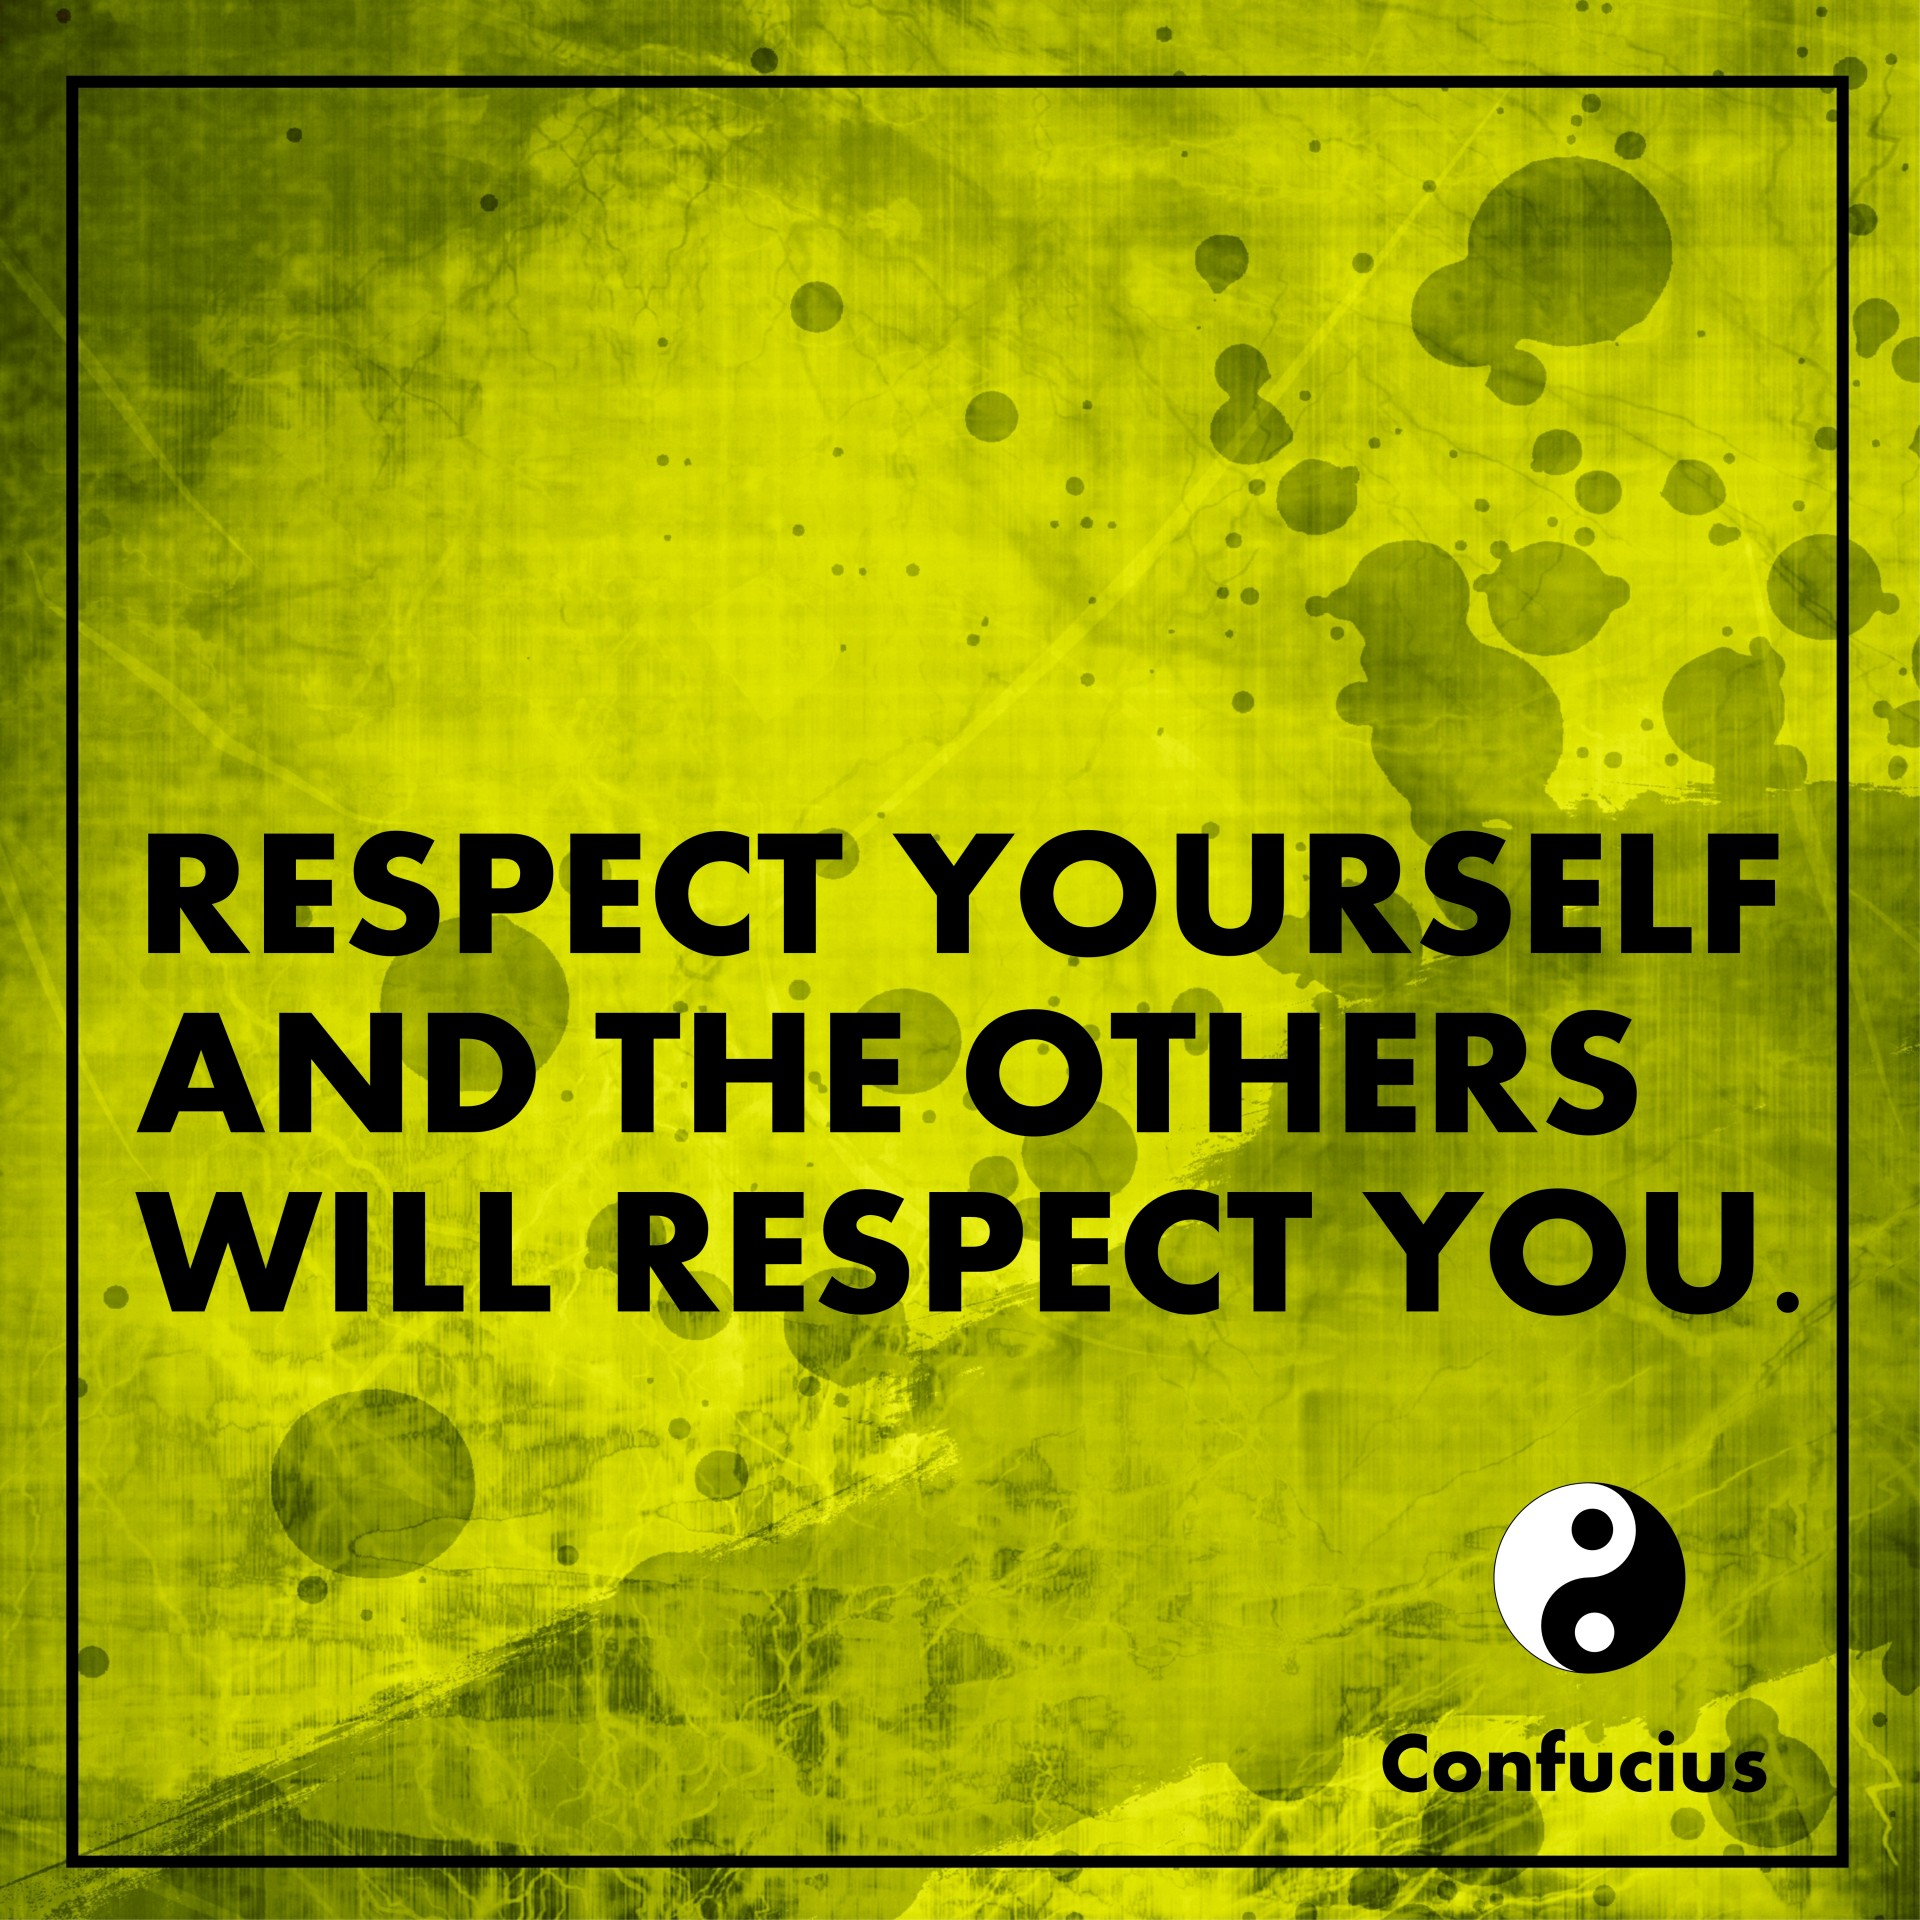 Www Inspirational Quotes Wallpaper Respect Yourself Confucius Free Stock Photo Public